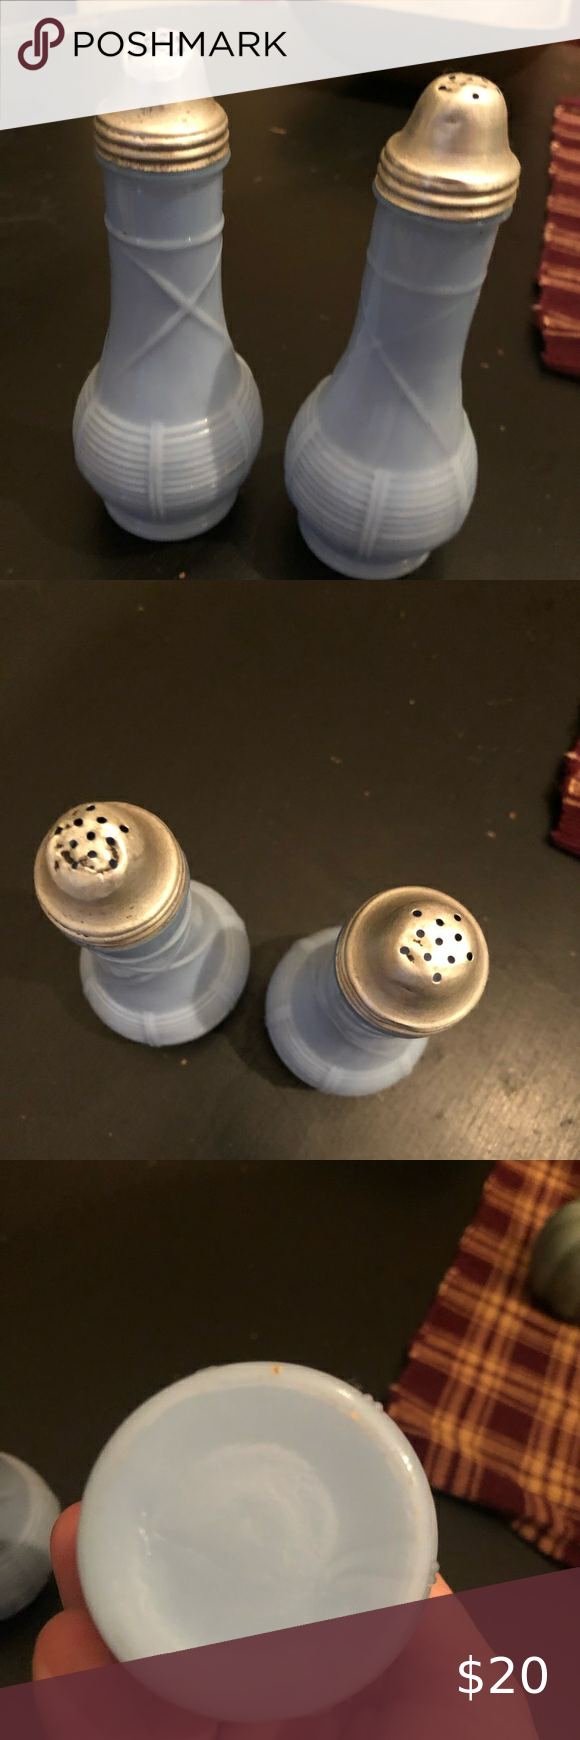 Antique salt and pepper shakers Antique salt and p